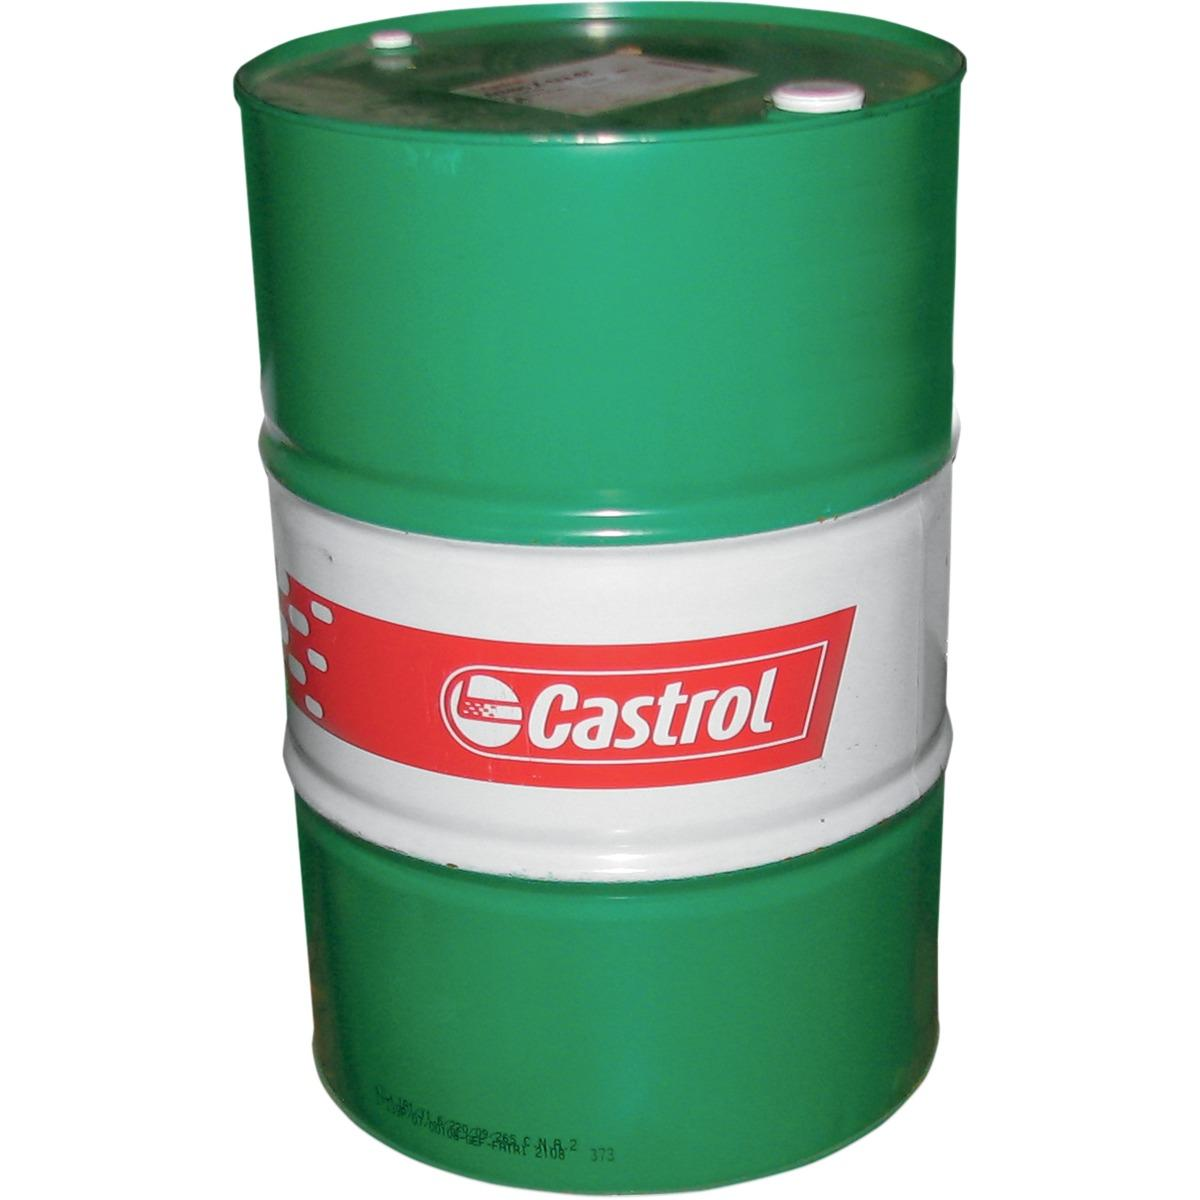 Castrol 5562 Mineral-Based 4T Oil - 20W50 - 55gal. Drum